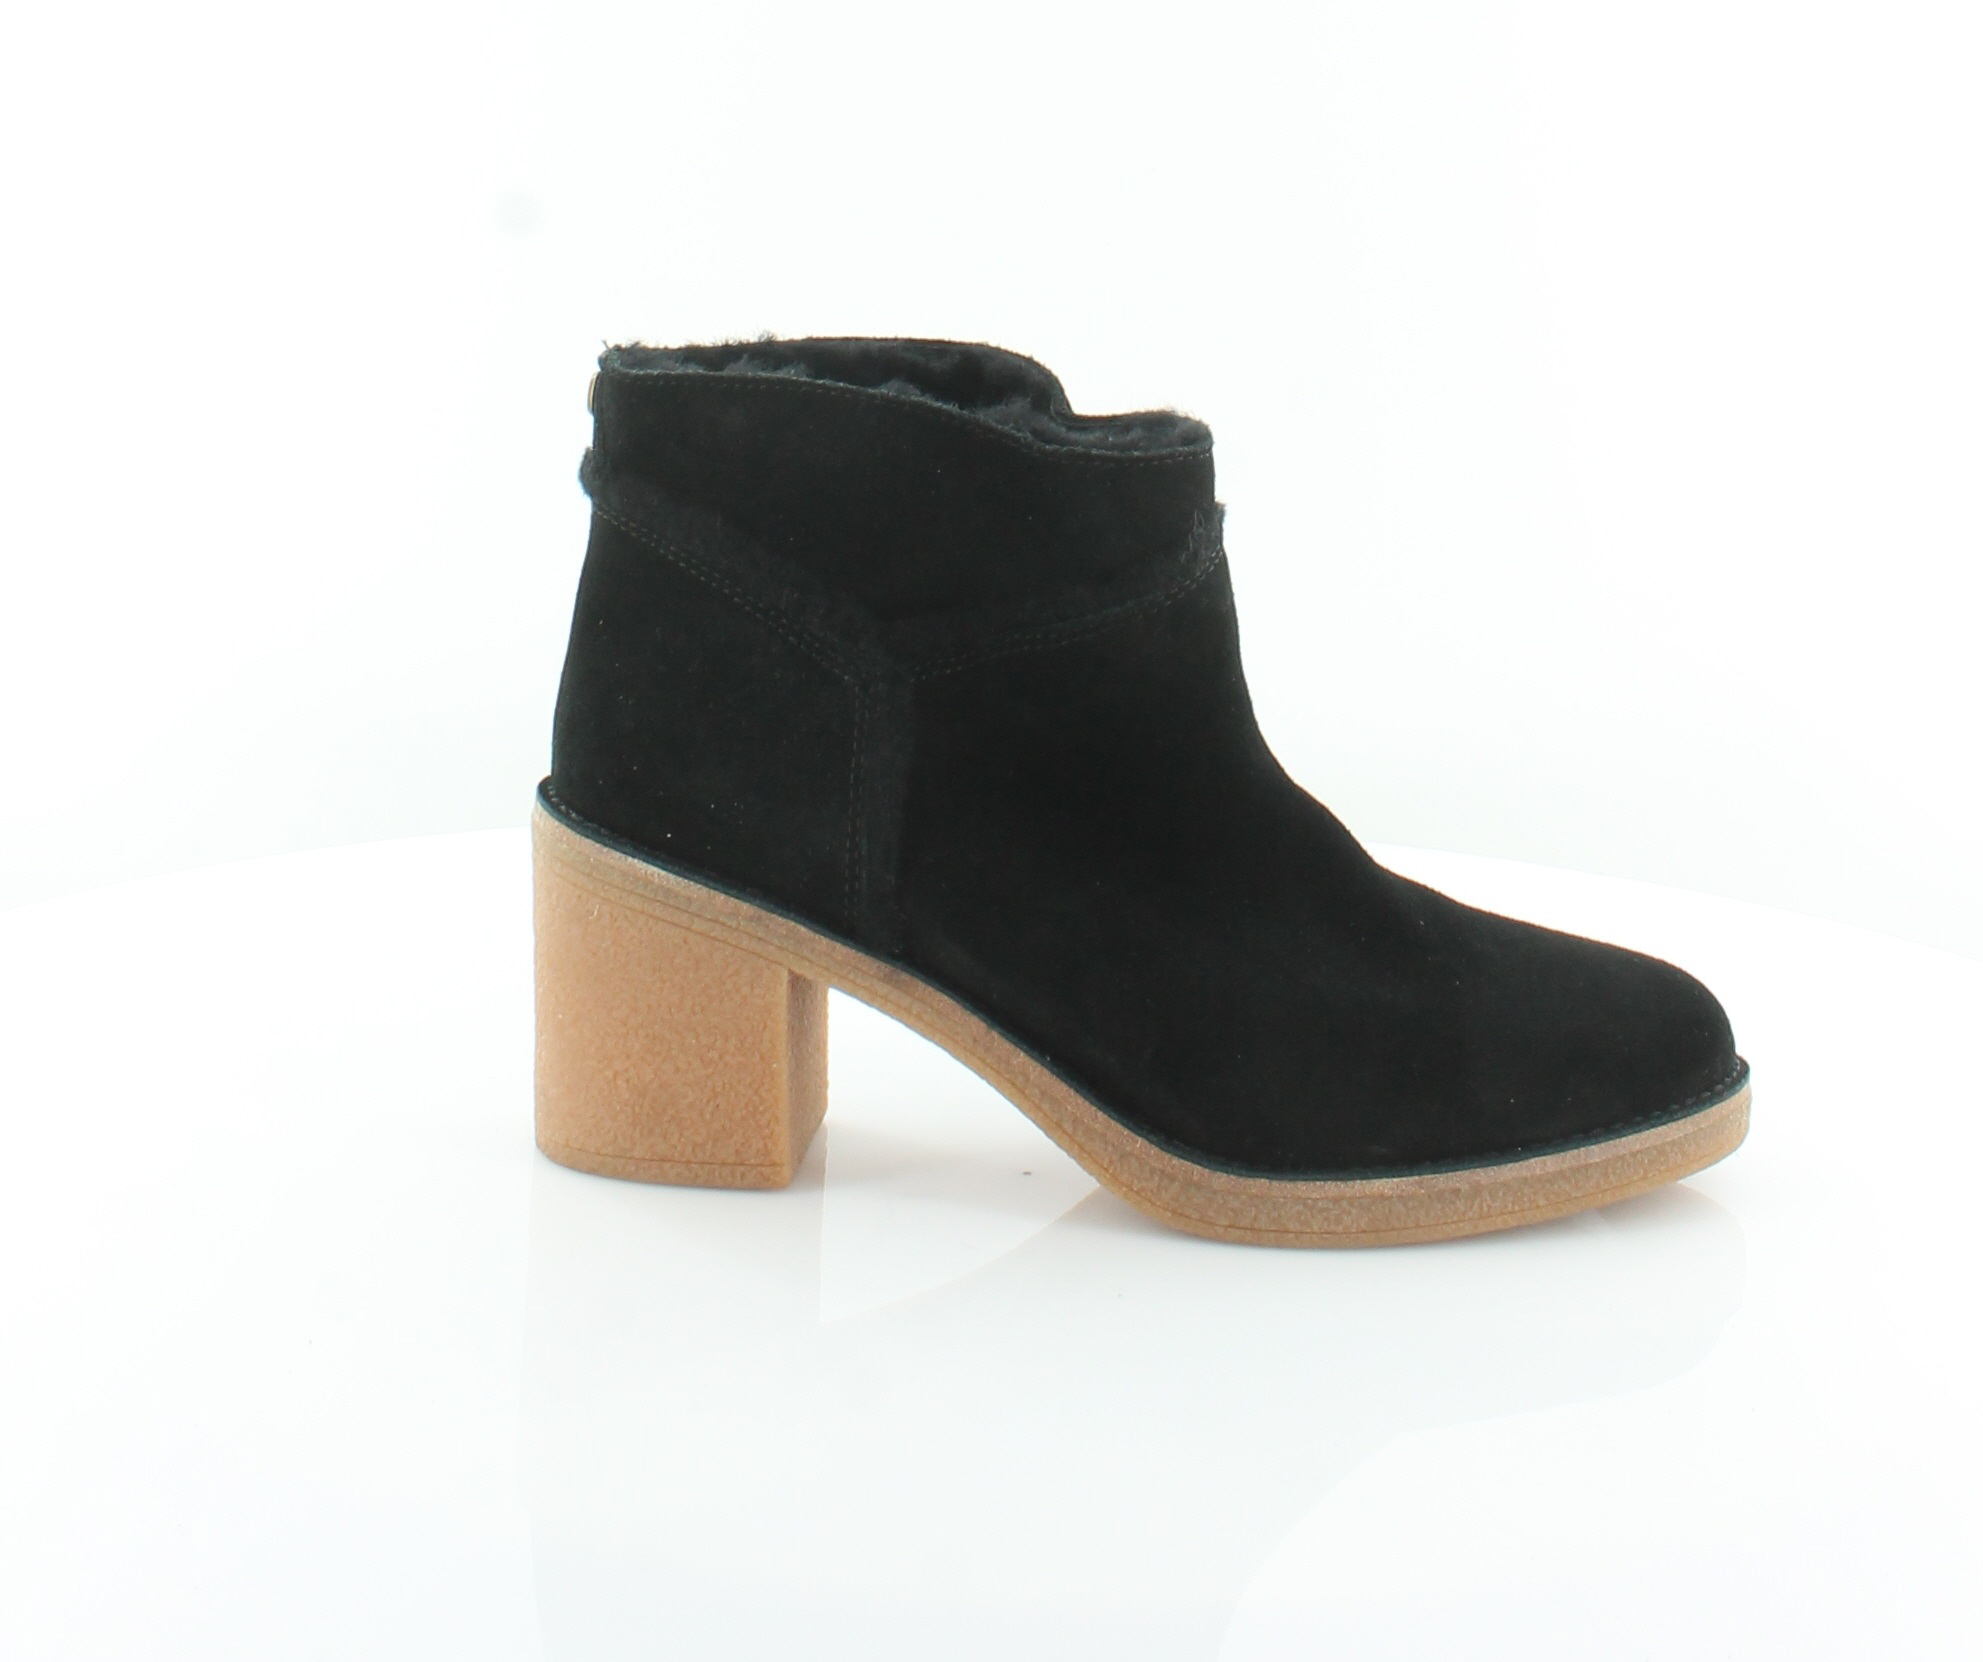 5ca9f66f35c UGG NEW KASEN Black Womens Shoes Size 8.5 M Boots MSRP $150